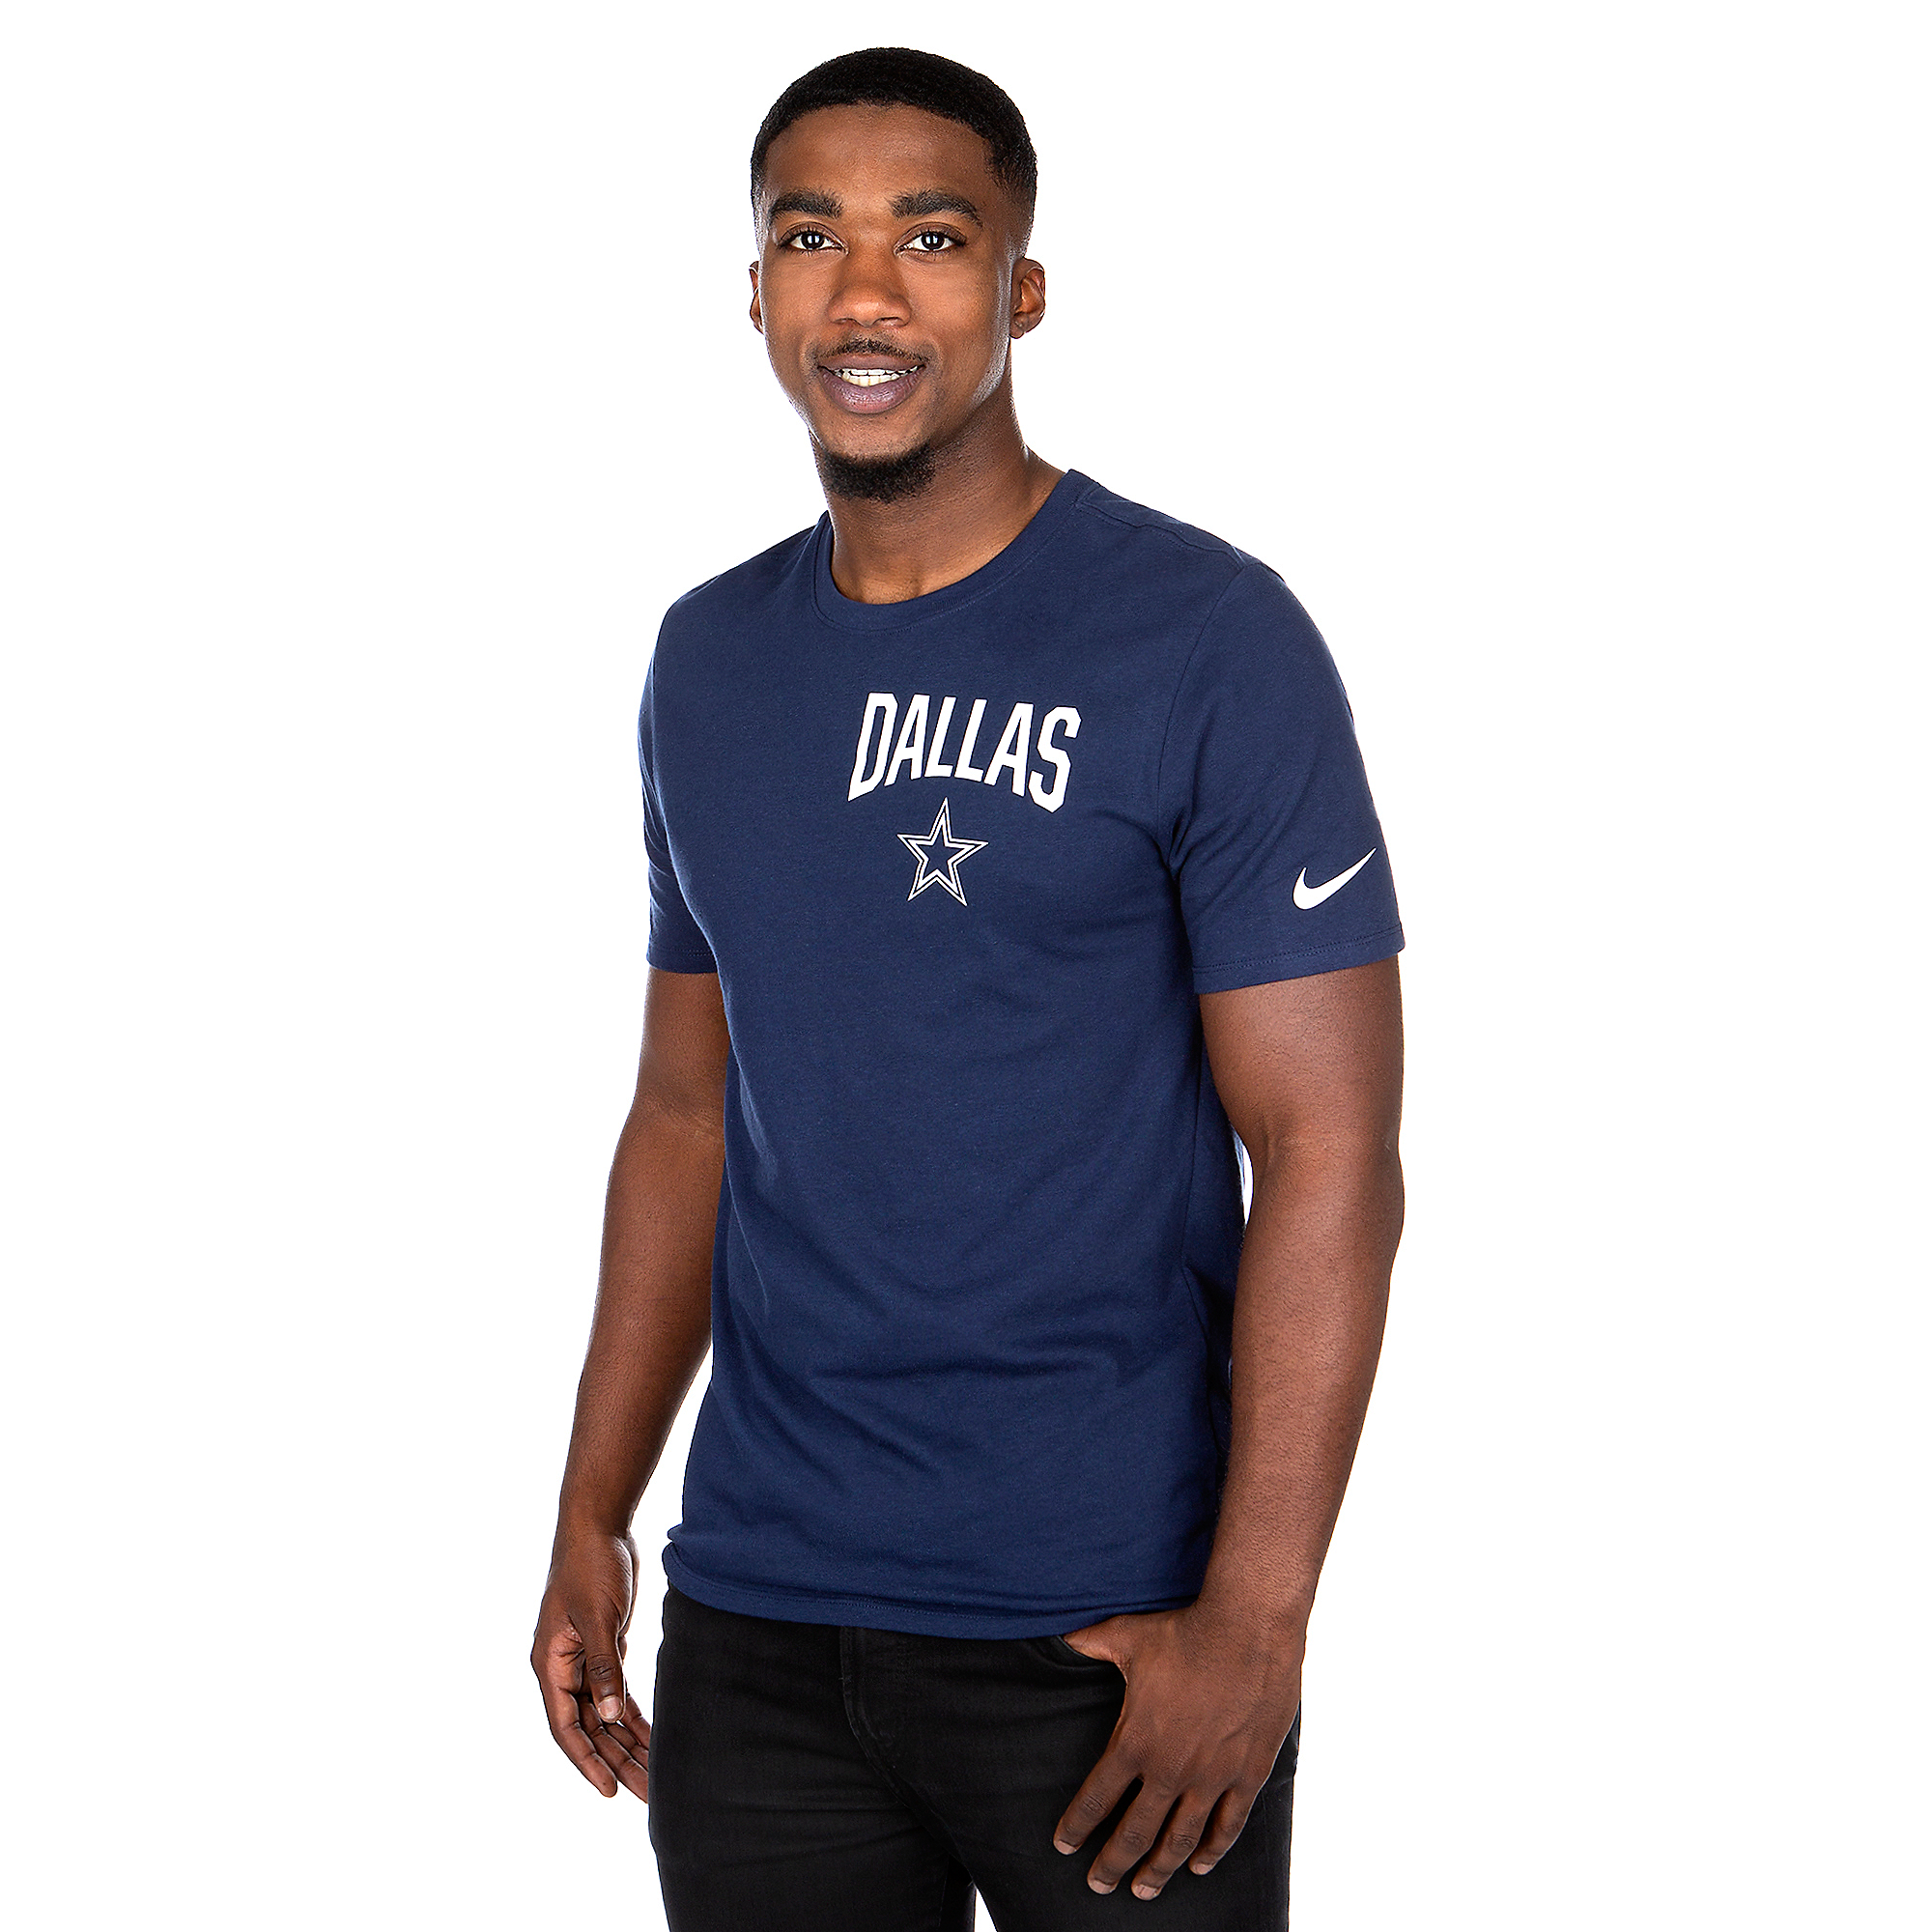 Dallas Cowboys Nike Mens Dri-FIT Facility Short Sleeve T-Shirt